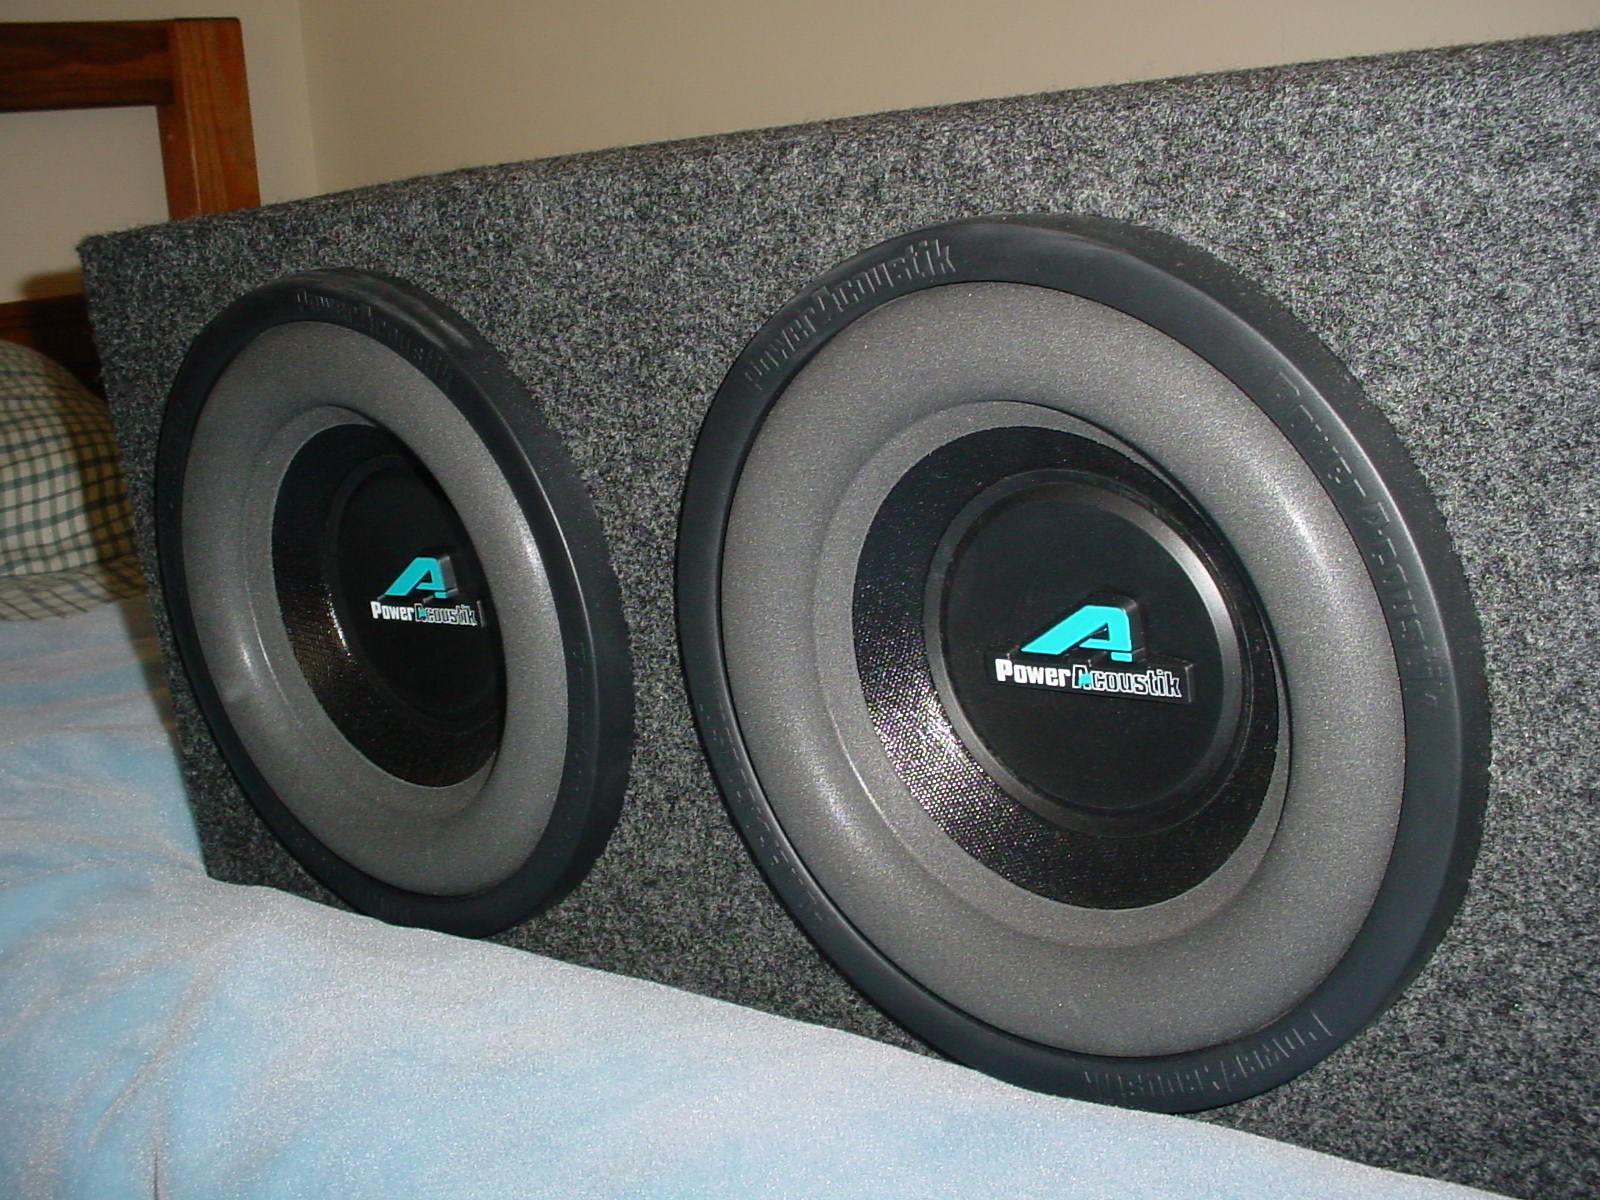 Power Acoustic Subwoofer in enclosure